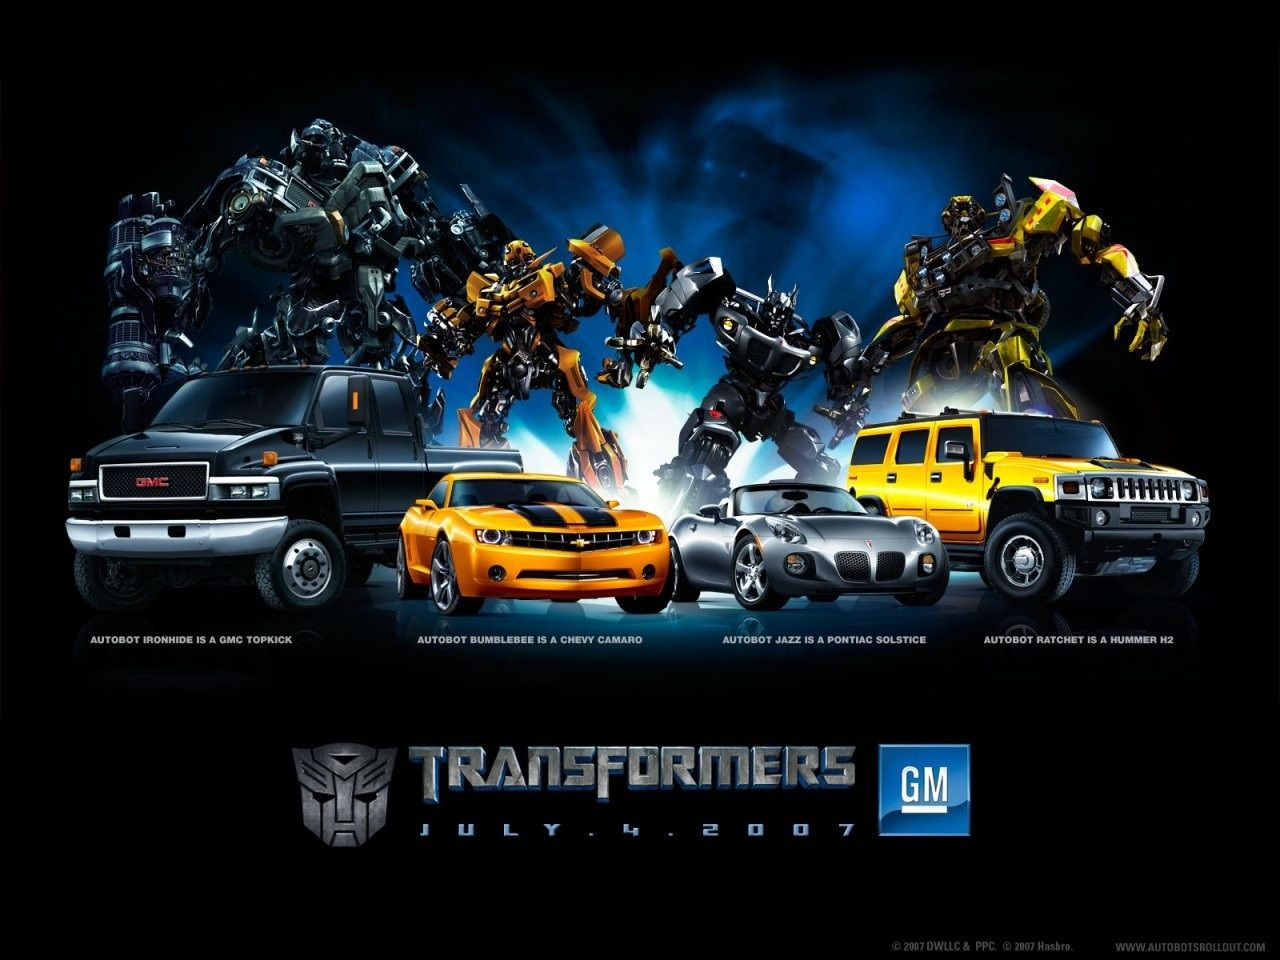 transformers pics | transformers movie trailer|download transformers